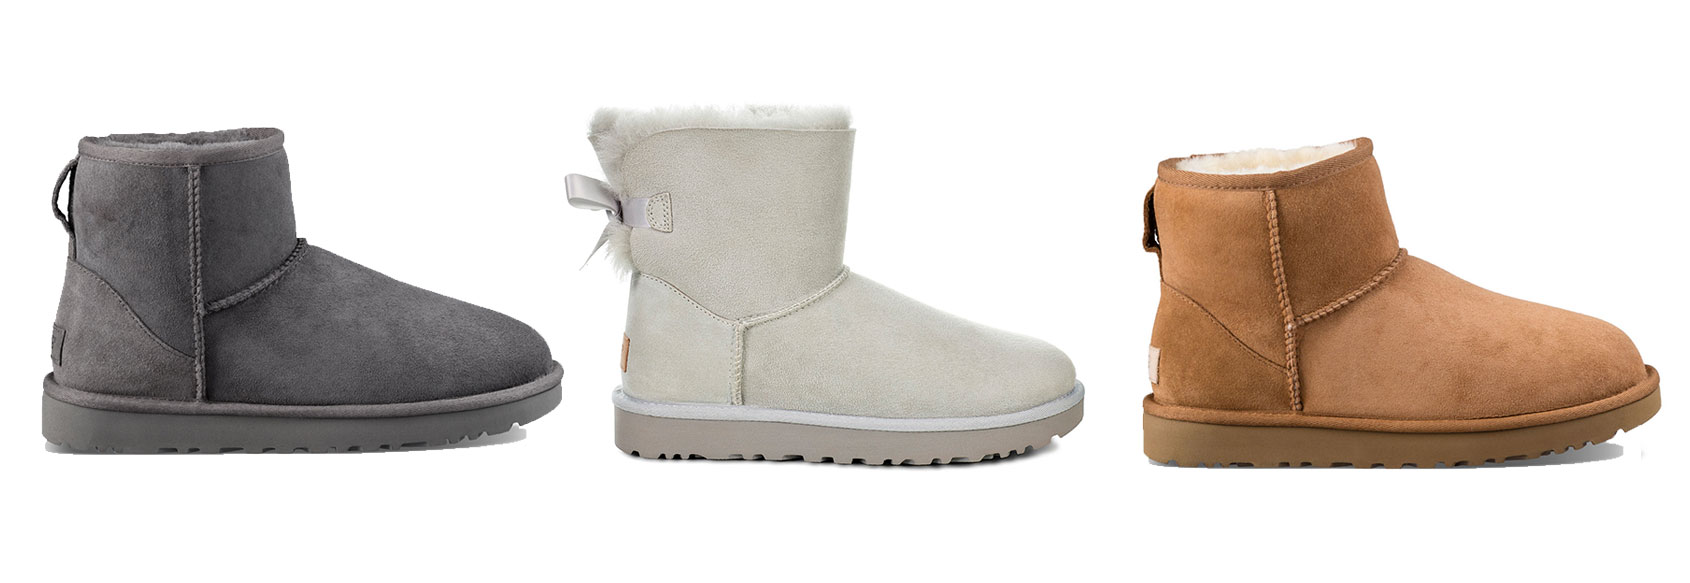 f17505c2b6a Shop Uggs Slippers and Winter Ugg Boots for Women